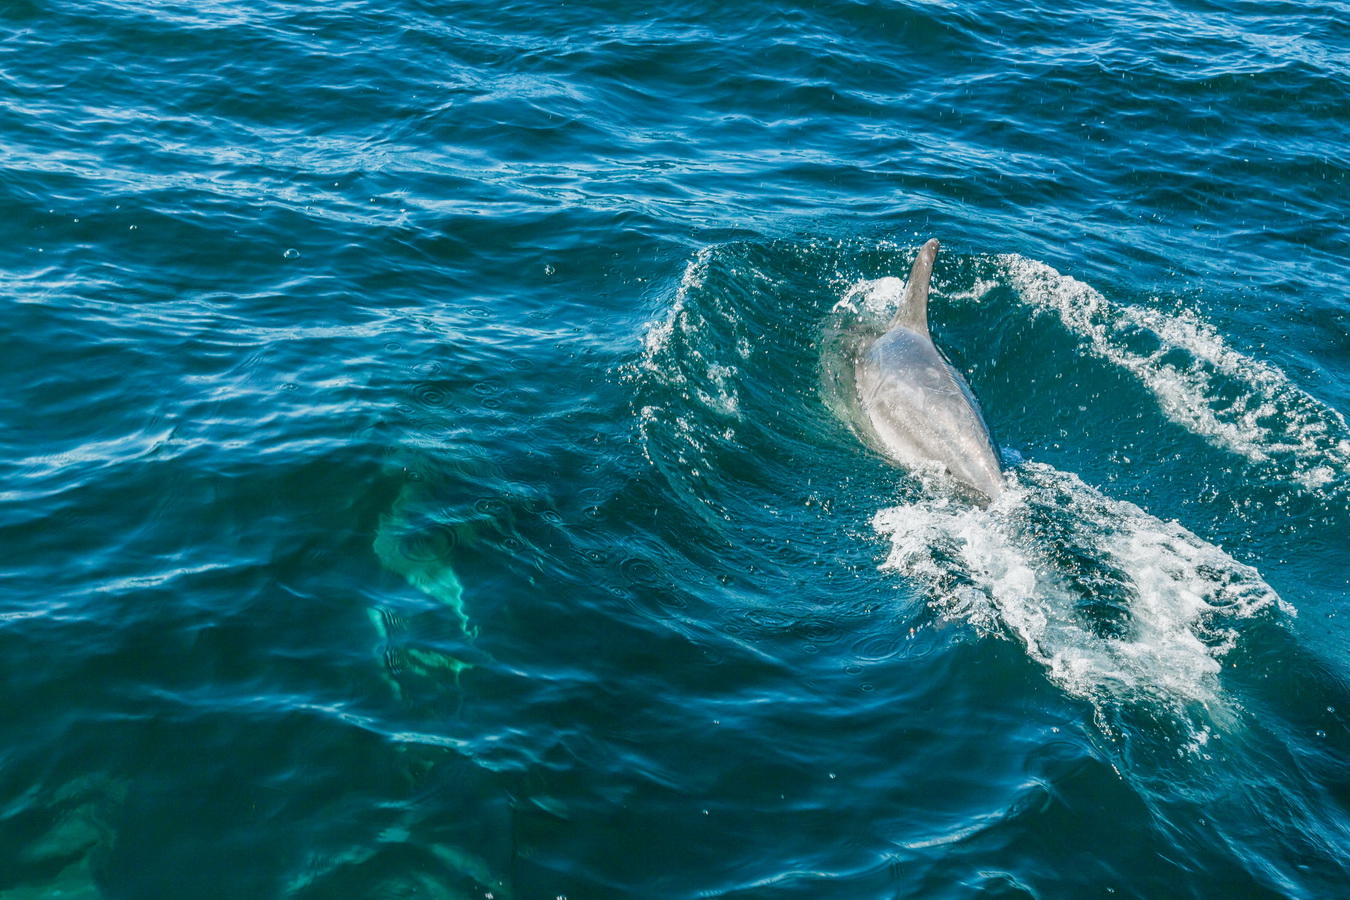 dolphin, Kaikoura,Whale Watch Tour, South Island ,New Zealand